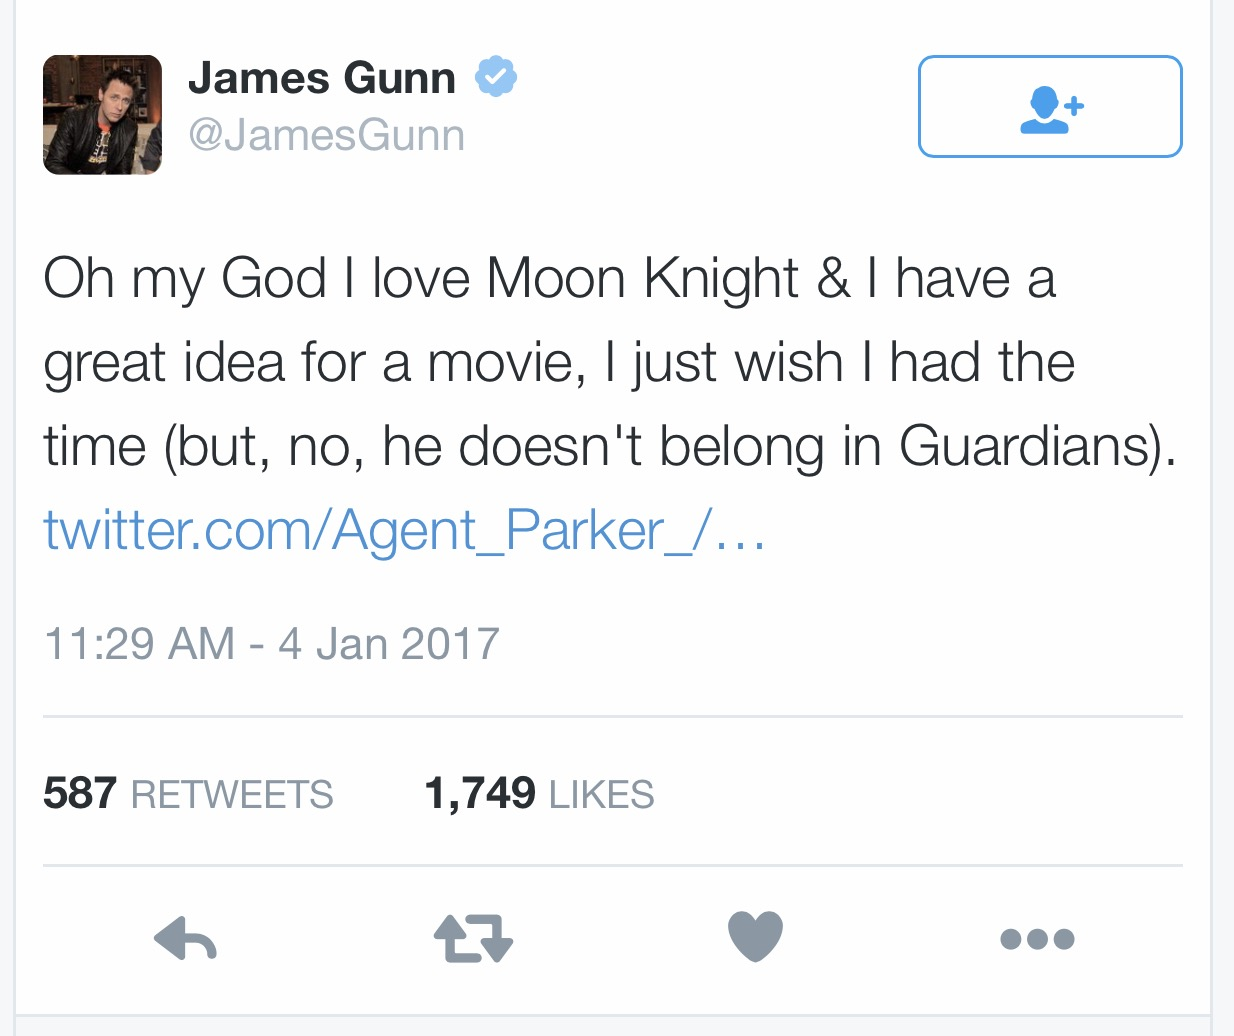 James Gunn may have killed fans hope in seeing Moon Knight in Guardians Of The Galaxy but that is good! A Moon Knight story would best be told on Netflix as a series!